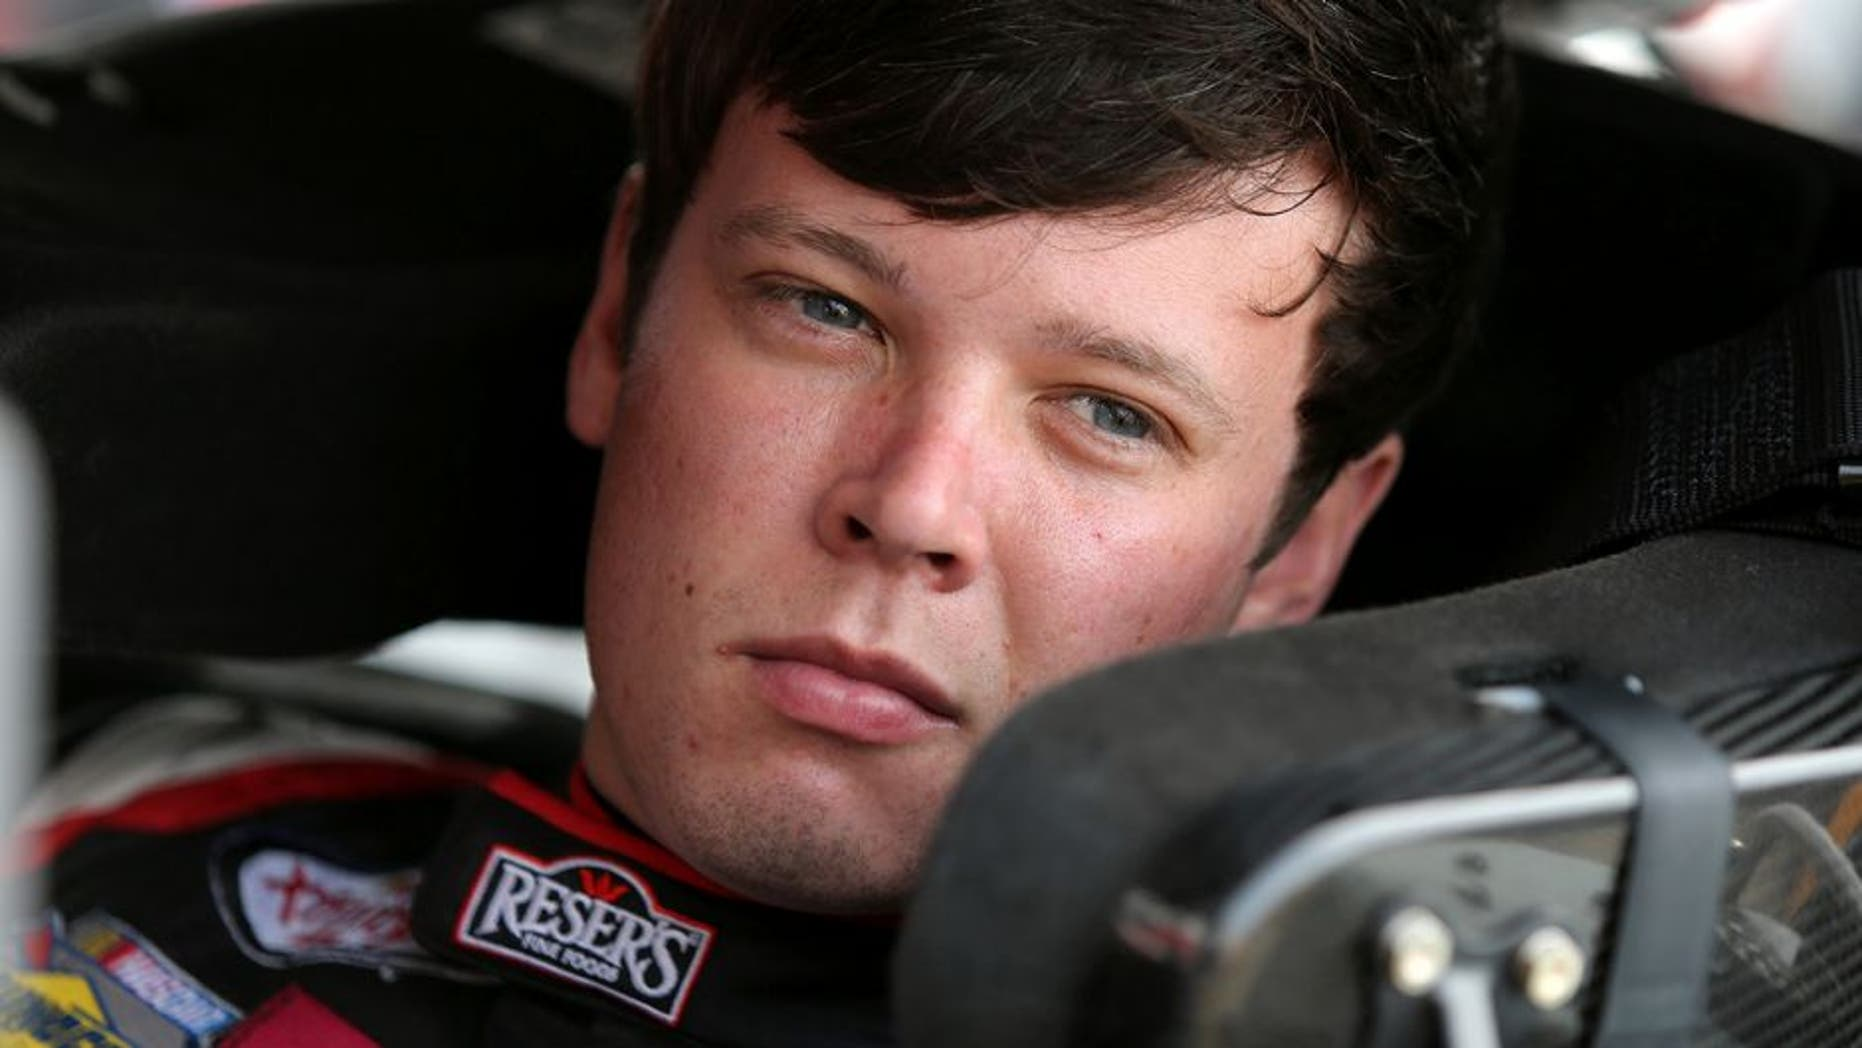 BROOKLYN, MI - JUNE 10: Erik Jones, driver of the #20 Reser's Fine Foods Toyota, sits in his car during practice for the NASCAR XFINITY Series Menards 250 at Michigan International Speedway on June 10, 2016 in Brooklyn, Michigan. (Photo by Jerry Markland/Getty Images )